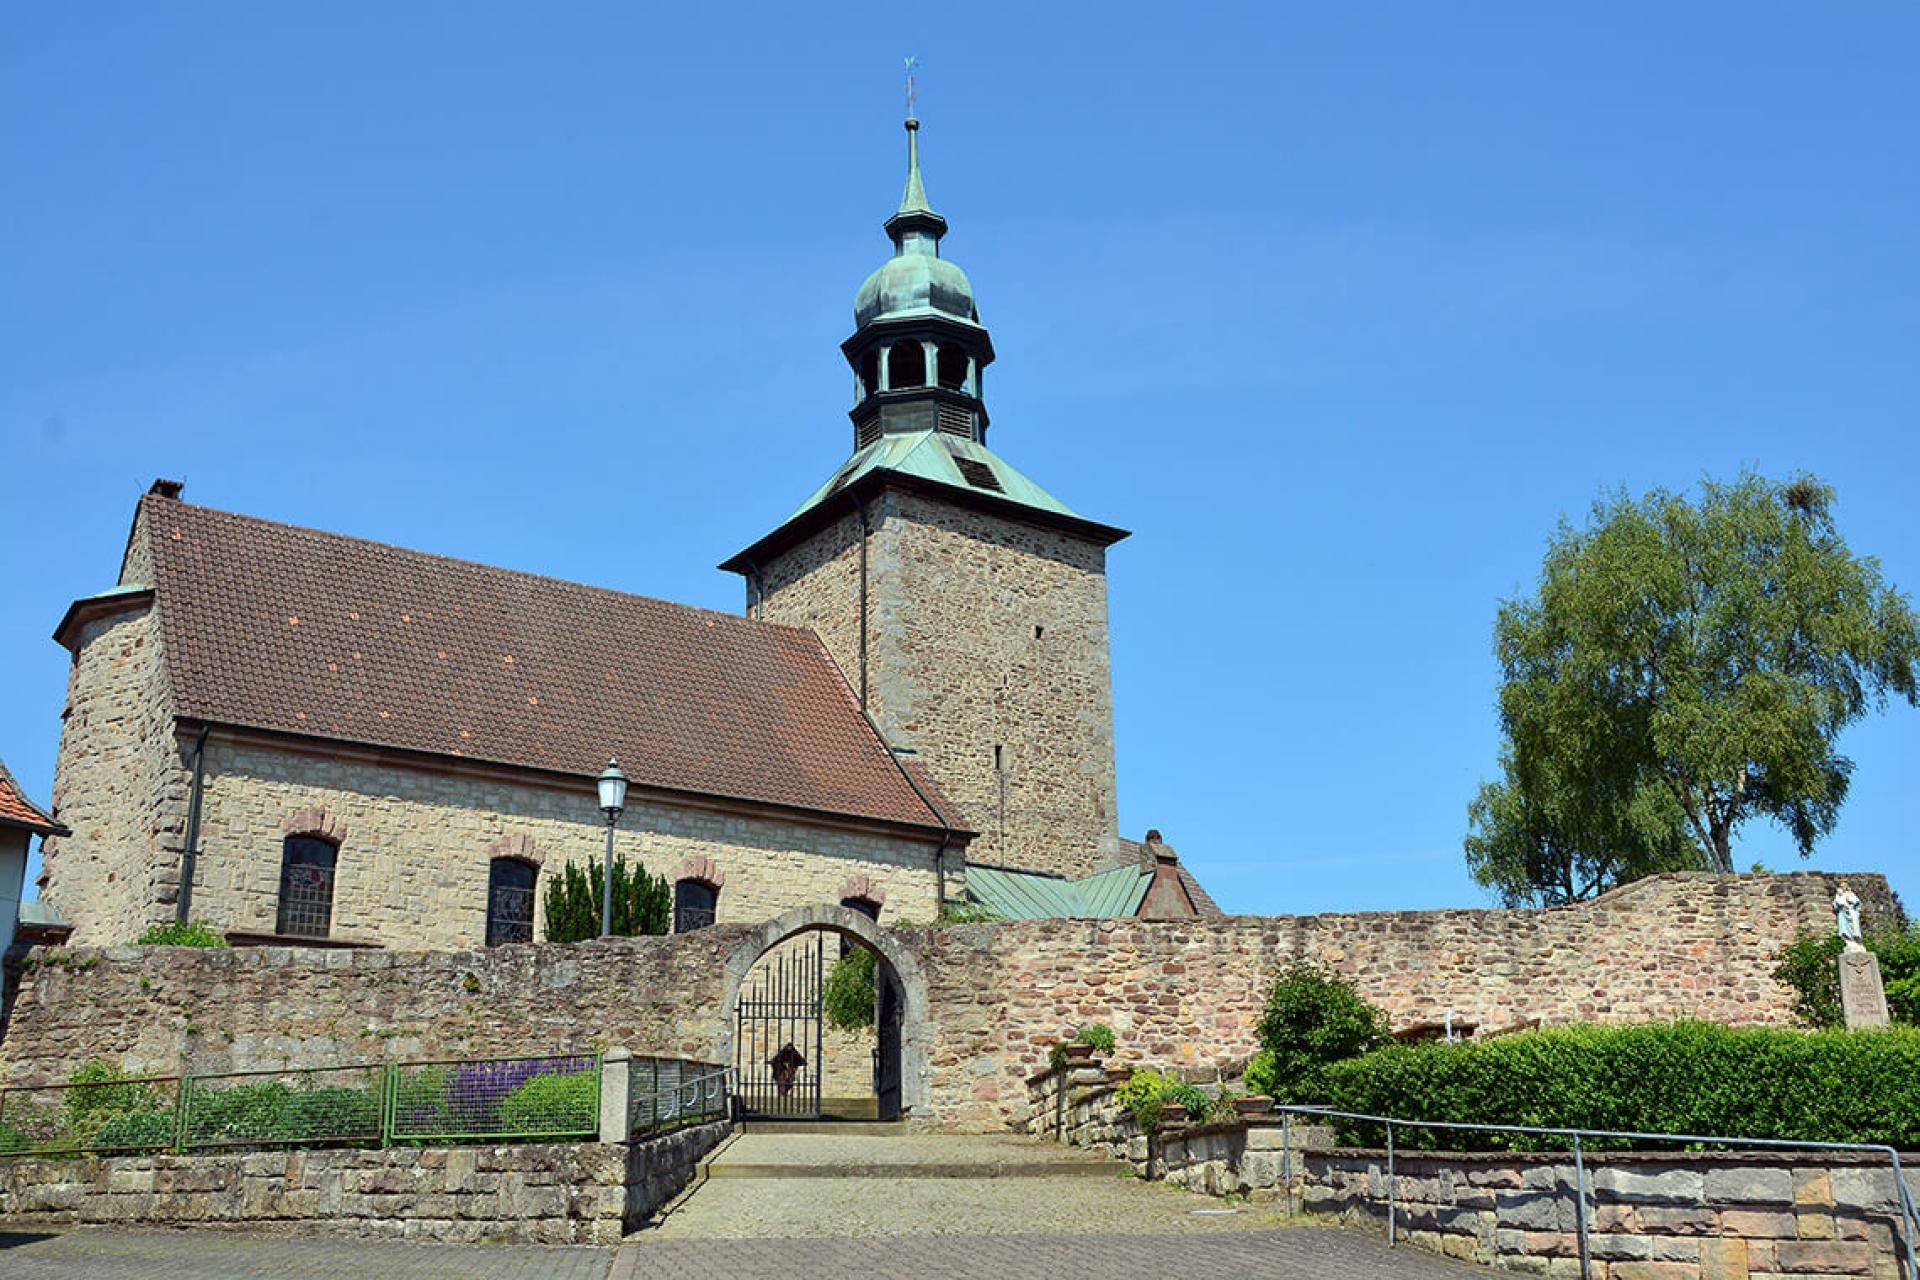 Wehrkirche in Ried